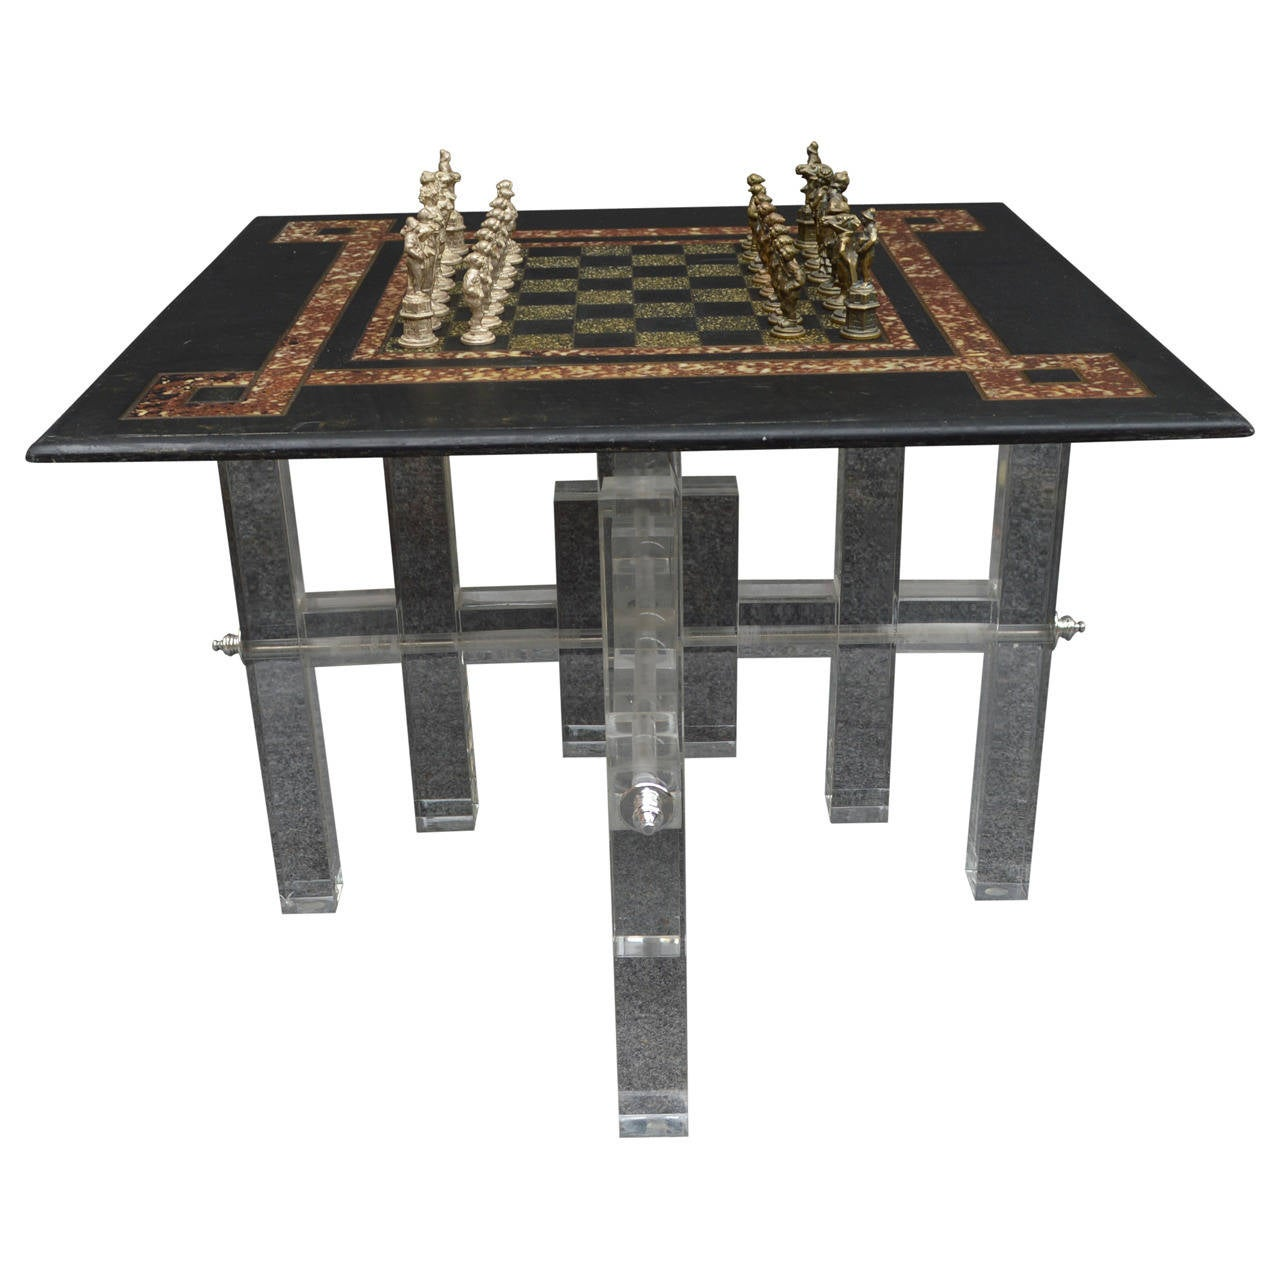 Small Chess Board Side Table For Sale At 1stdibs